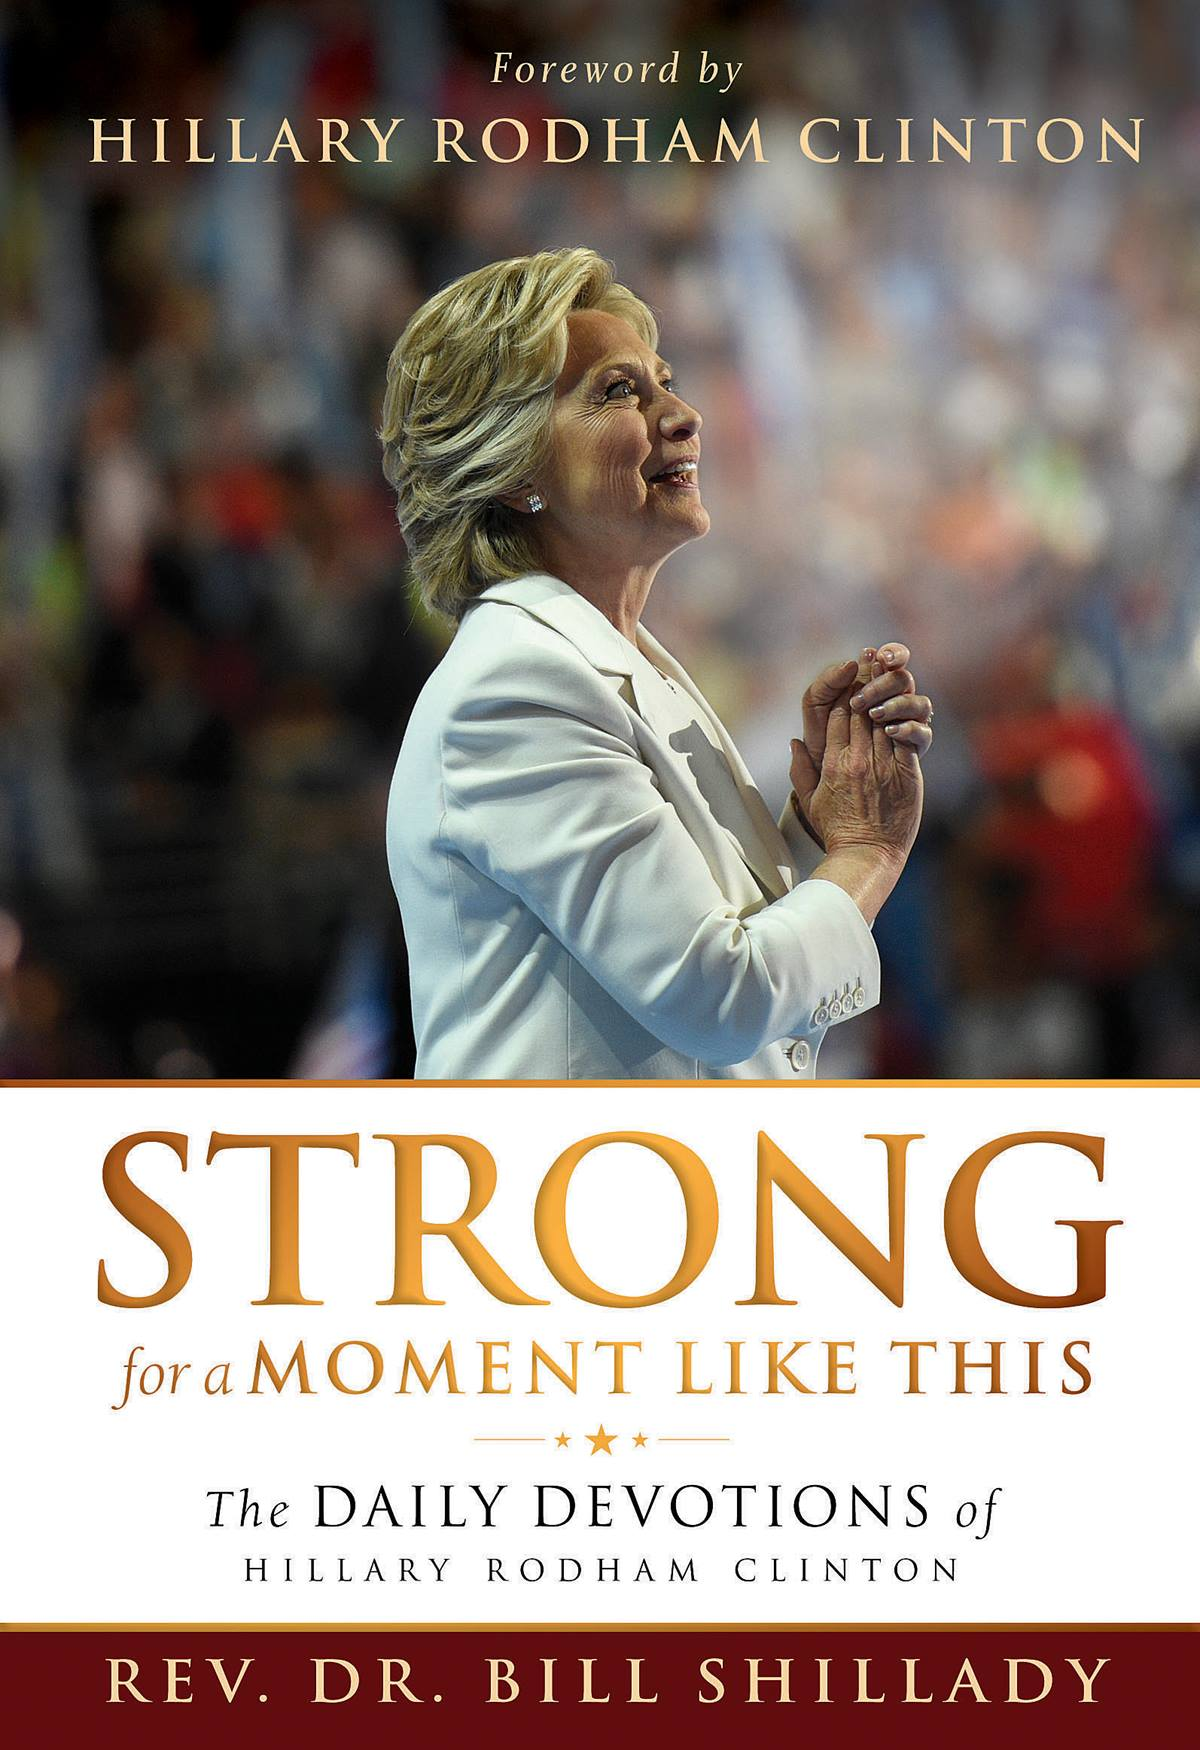 "Because of concerns about unattributed content, Abingdon Press has ended distribution of ""Strong for a Moment Like This,"" a collection of devotionals sent to Hillary Rodham Clinton during the 2016 presidential campaign."